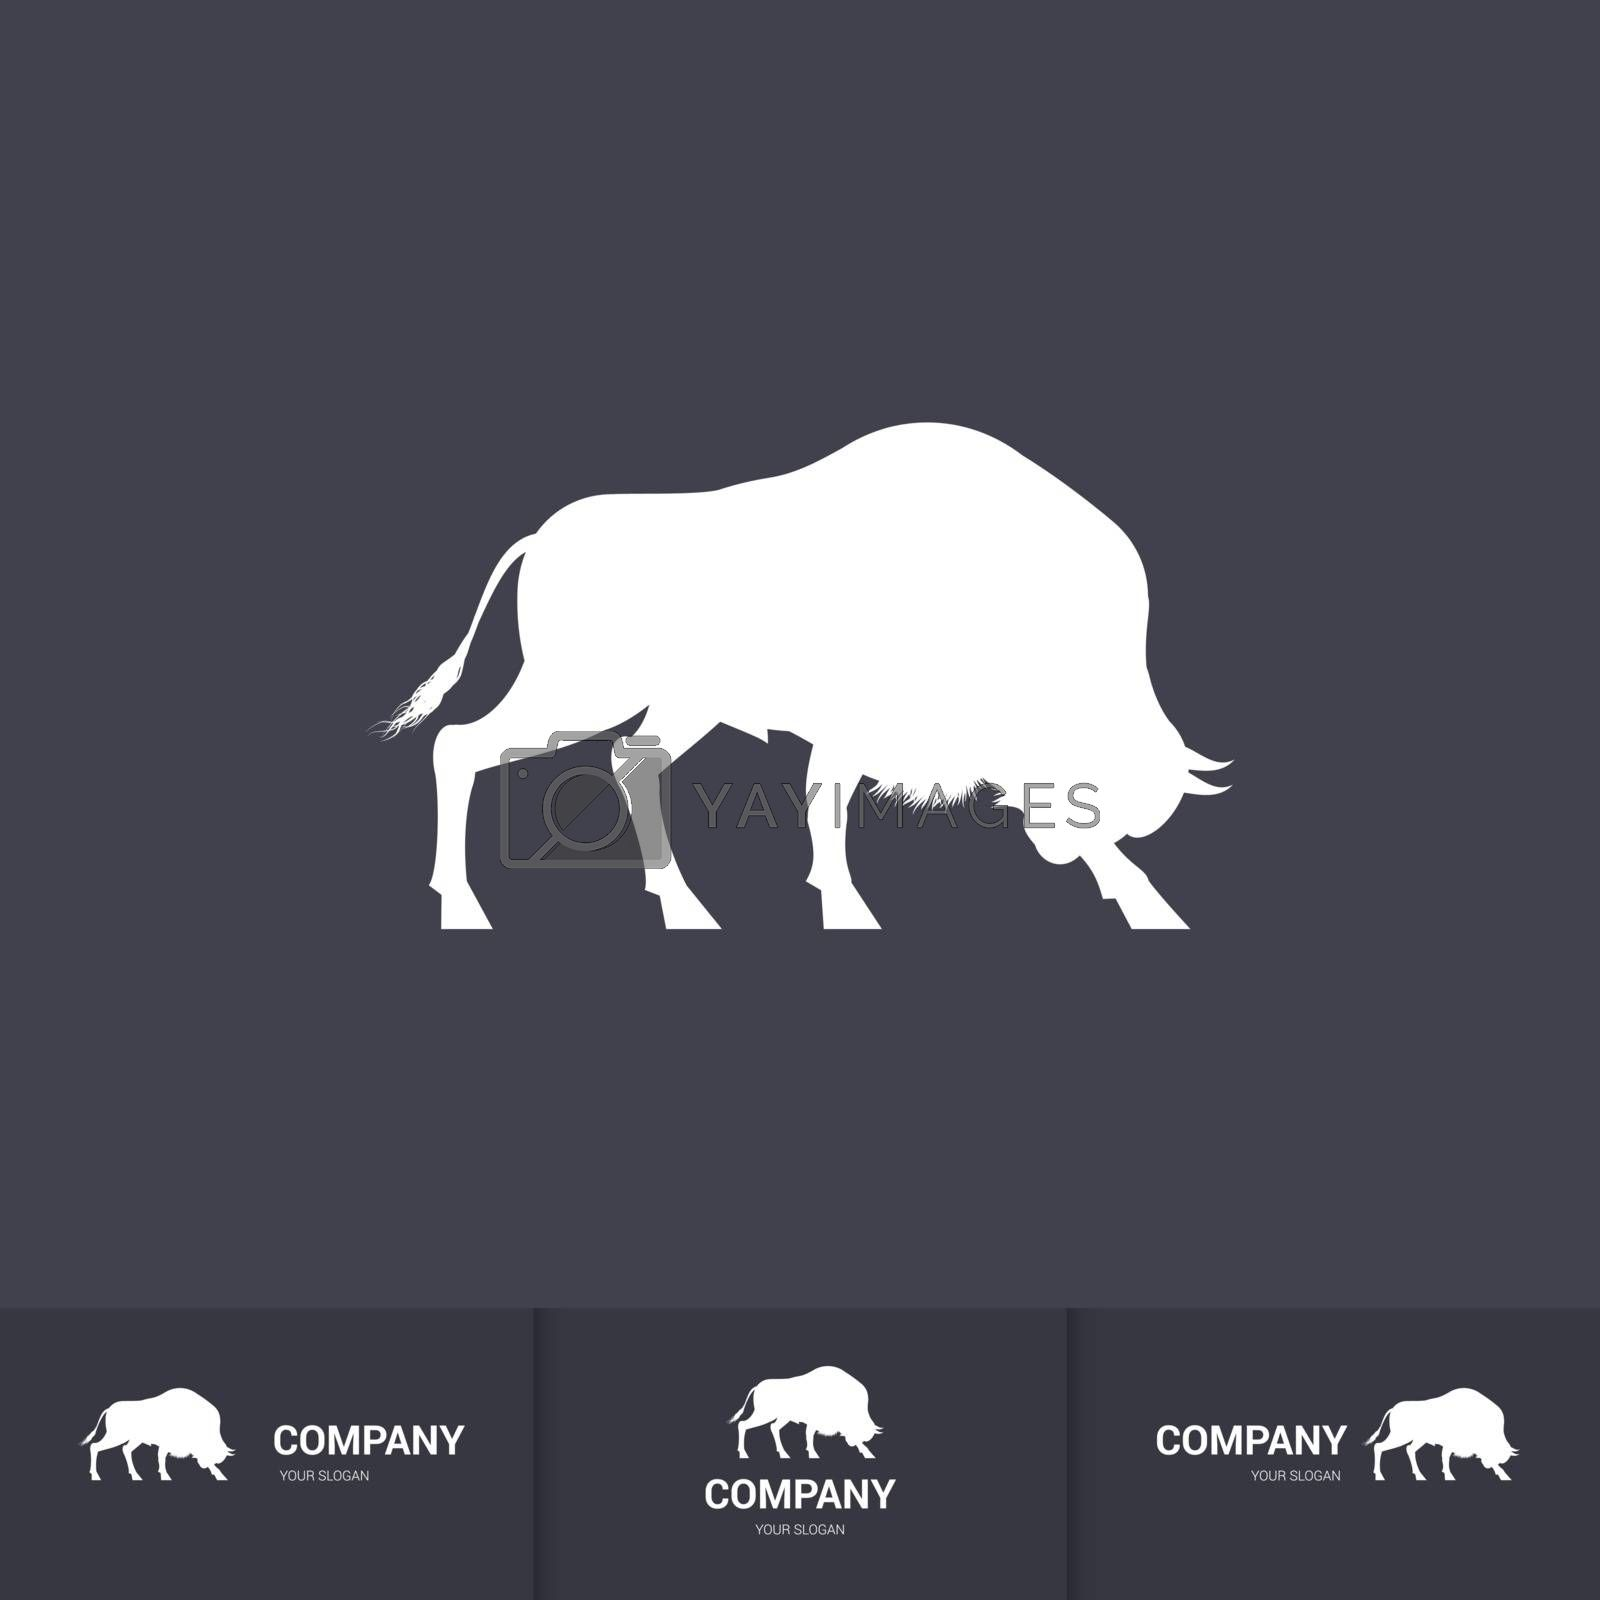 Stylized Bison for Mascot Logo Template on Dark Background